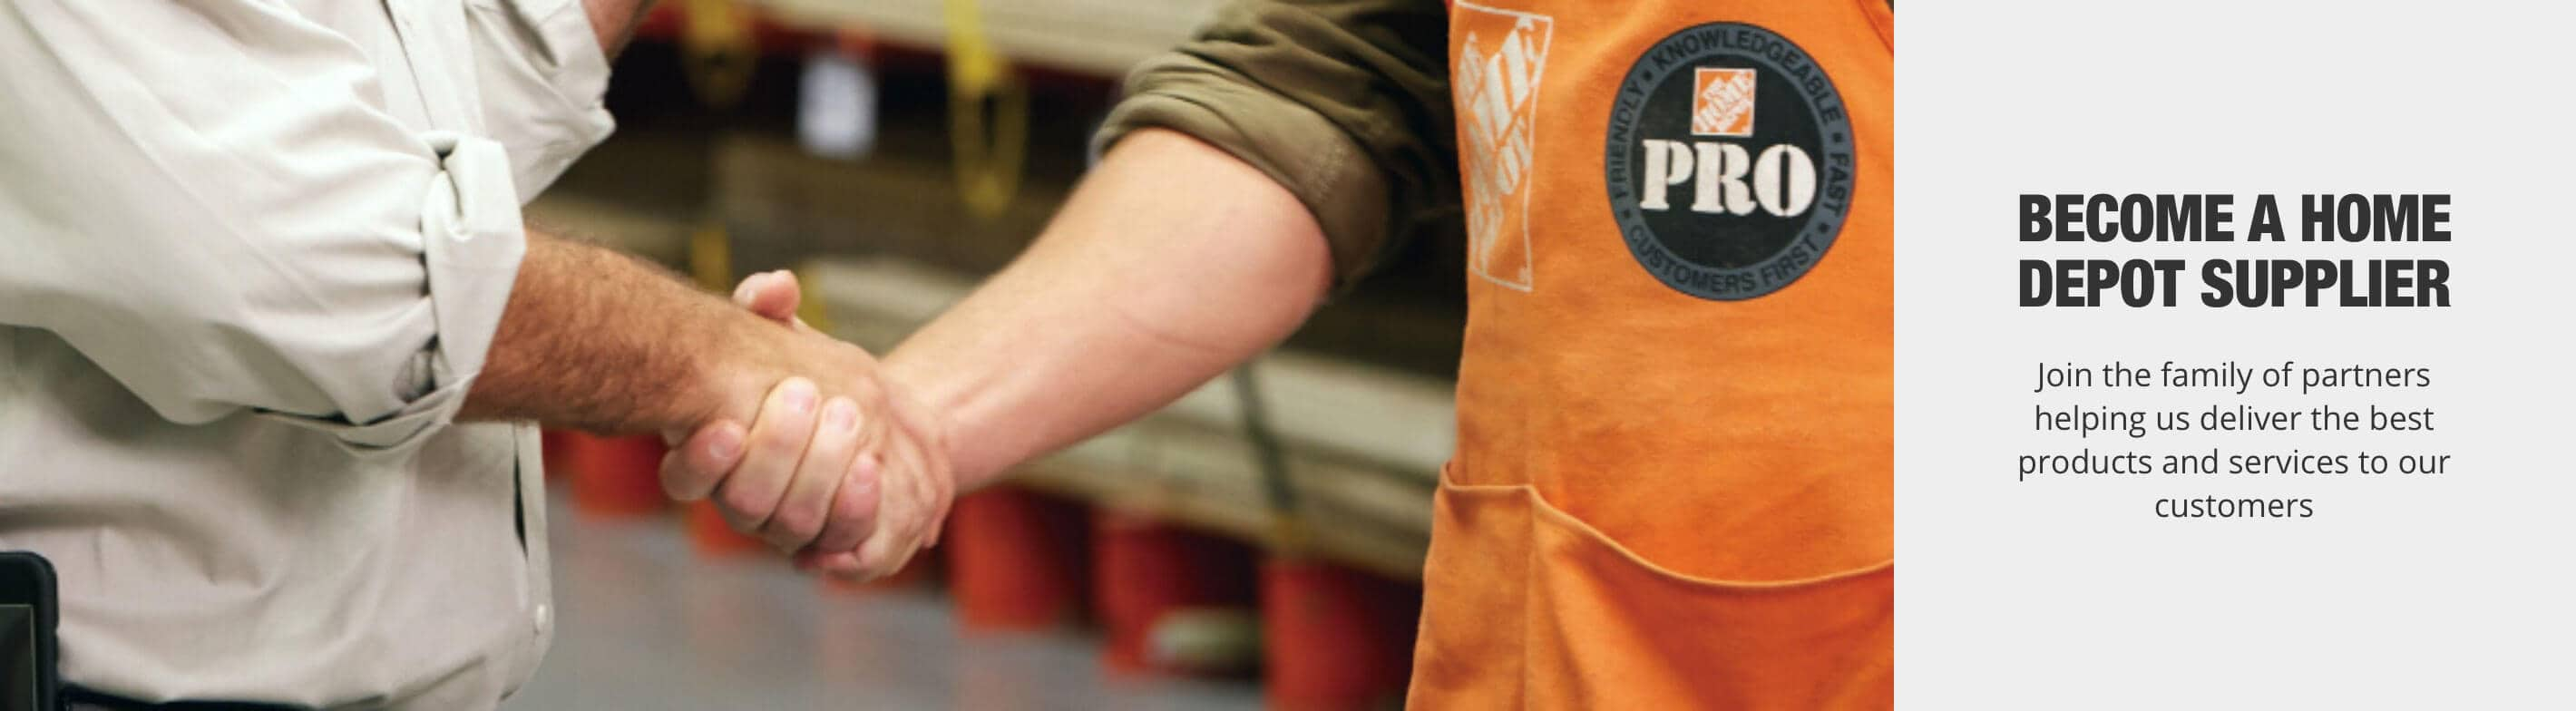 Become a Home Depot Supplier - Join the family of partners helping us deliver the best products and services to our customers